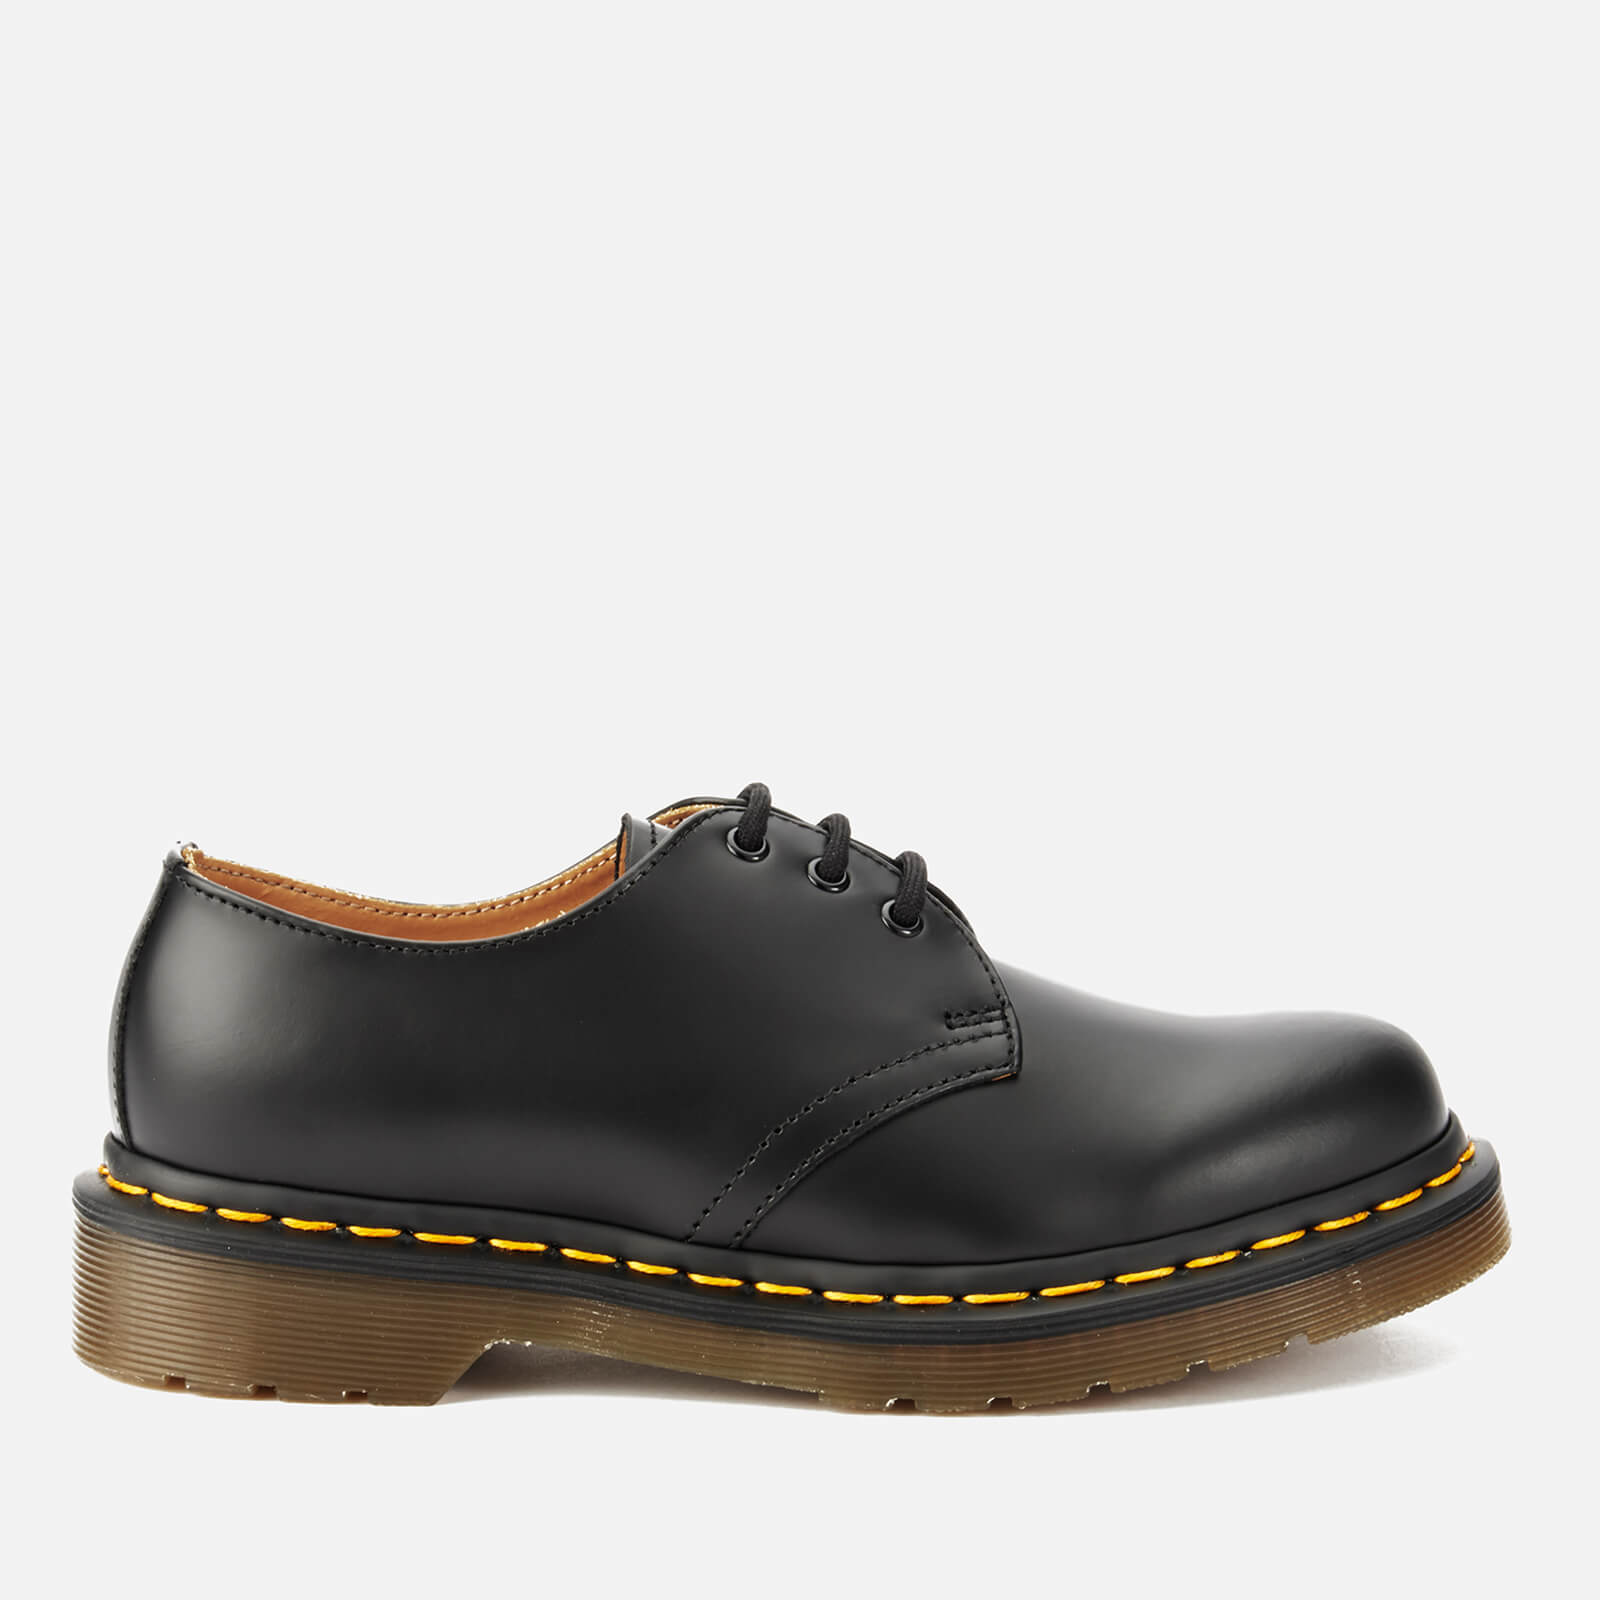 Dr Martens 1461 Smooth Leather 3 Eye Shoes Black Uk 6